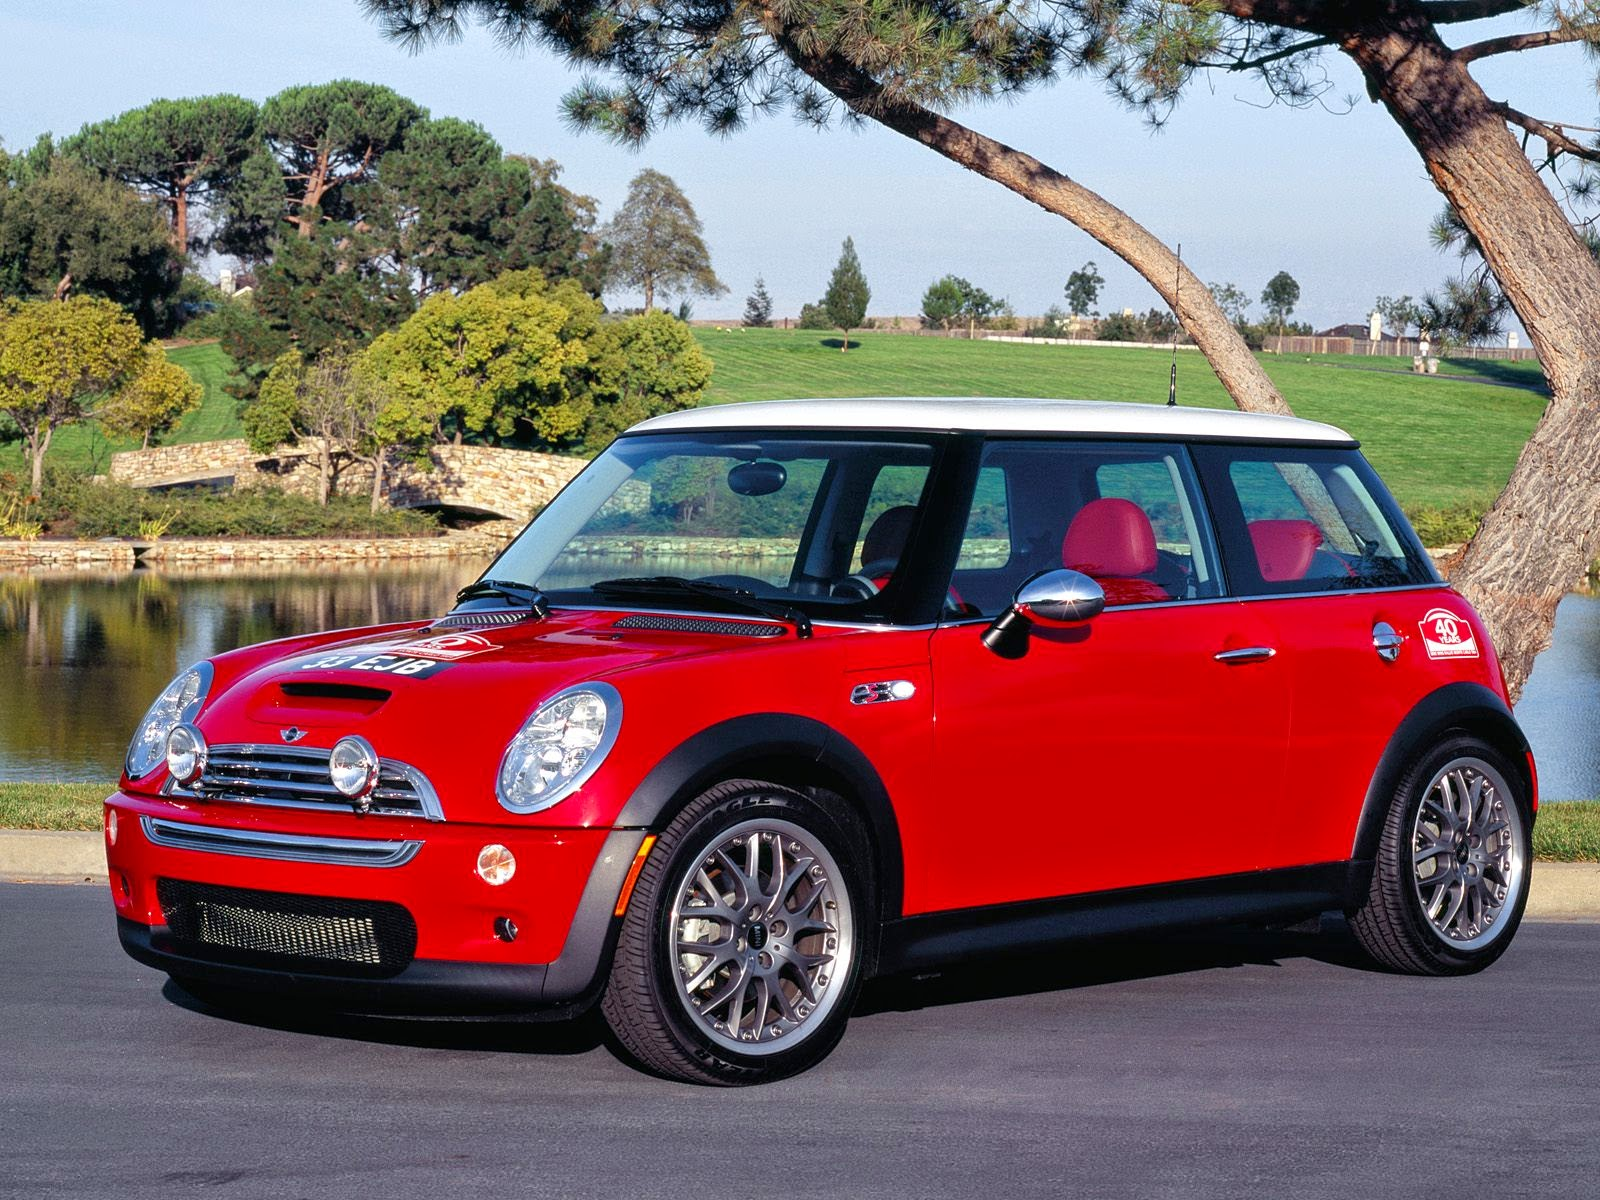 2015 mini cooper accessories wallpapers - 2016 MINI Cooper S Wallpaper Conceptcarz